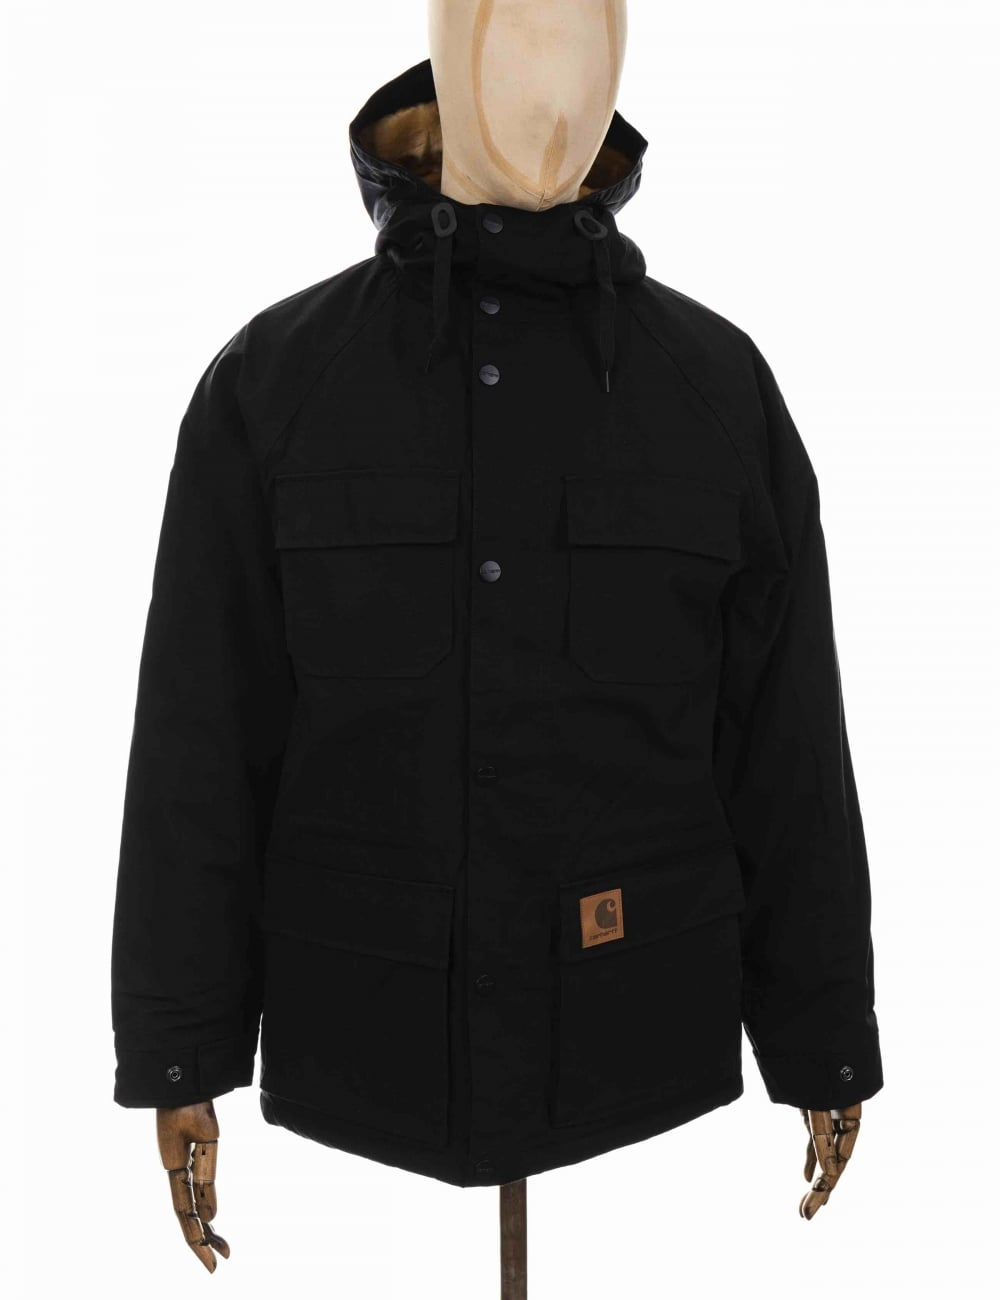 43b607ddf Mentley Jacket - Black